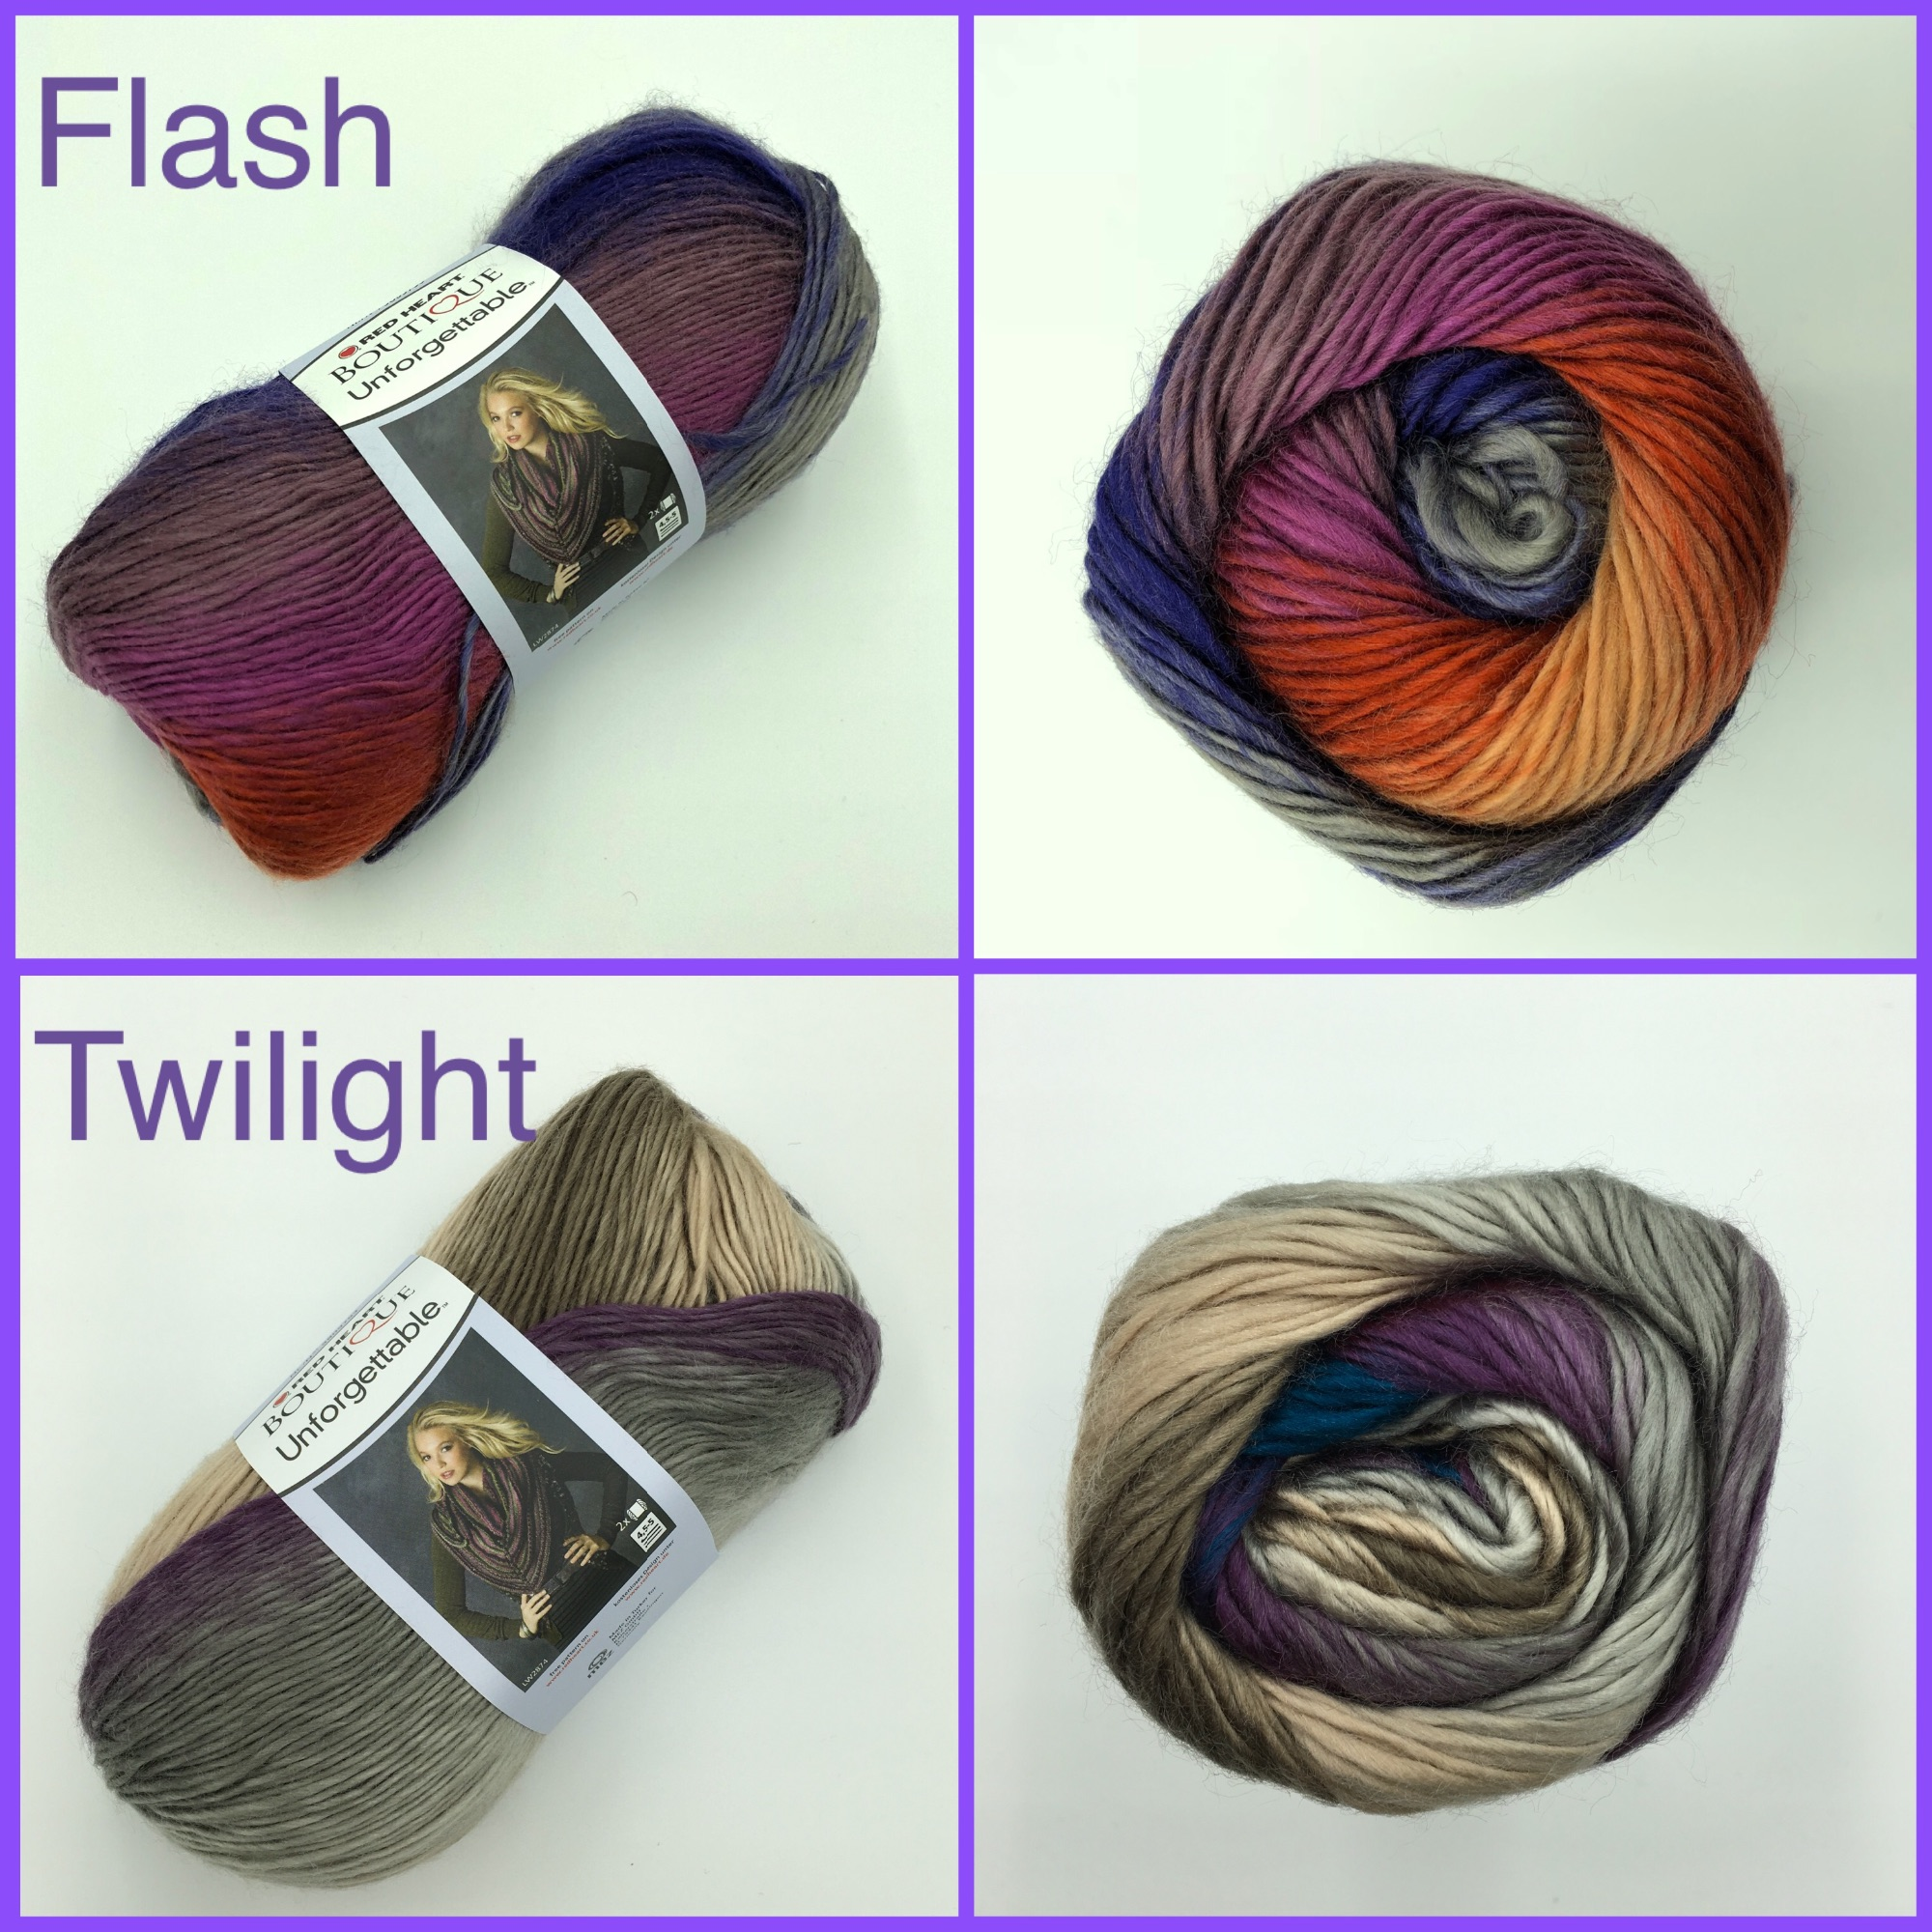 Red heart boutique unforgetable yarn colour flash twilight